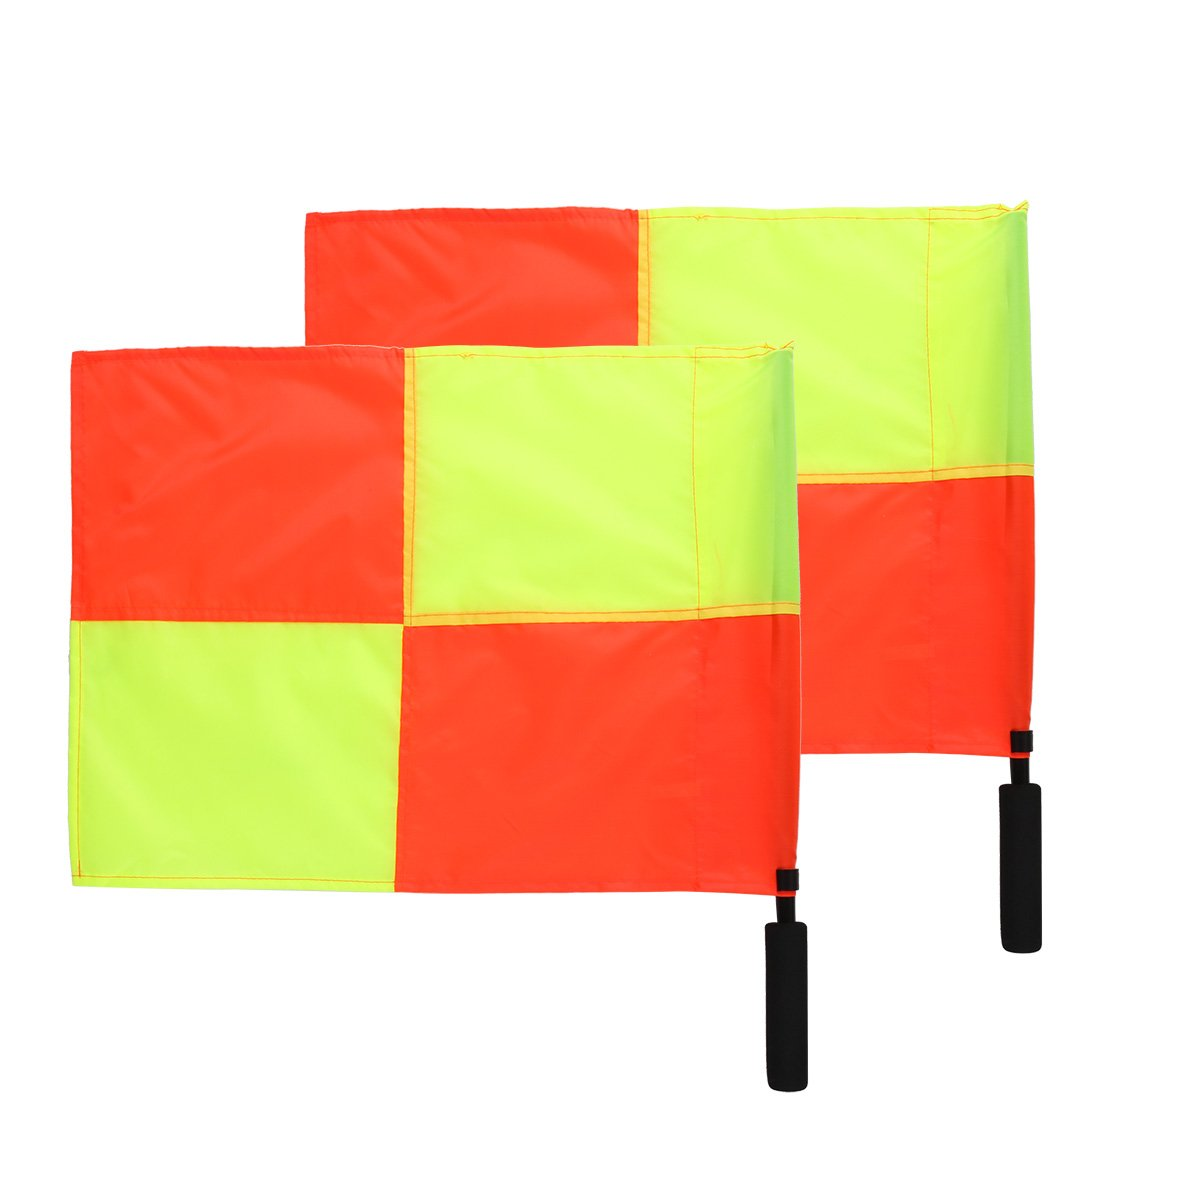 chictryサッカーレフェリーフラグThe World Cup再生スポーツ一致Football Linesman Competition機器サッカーレフェリーフラグ B076V9ZQWS